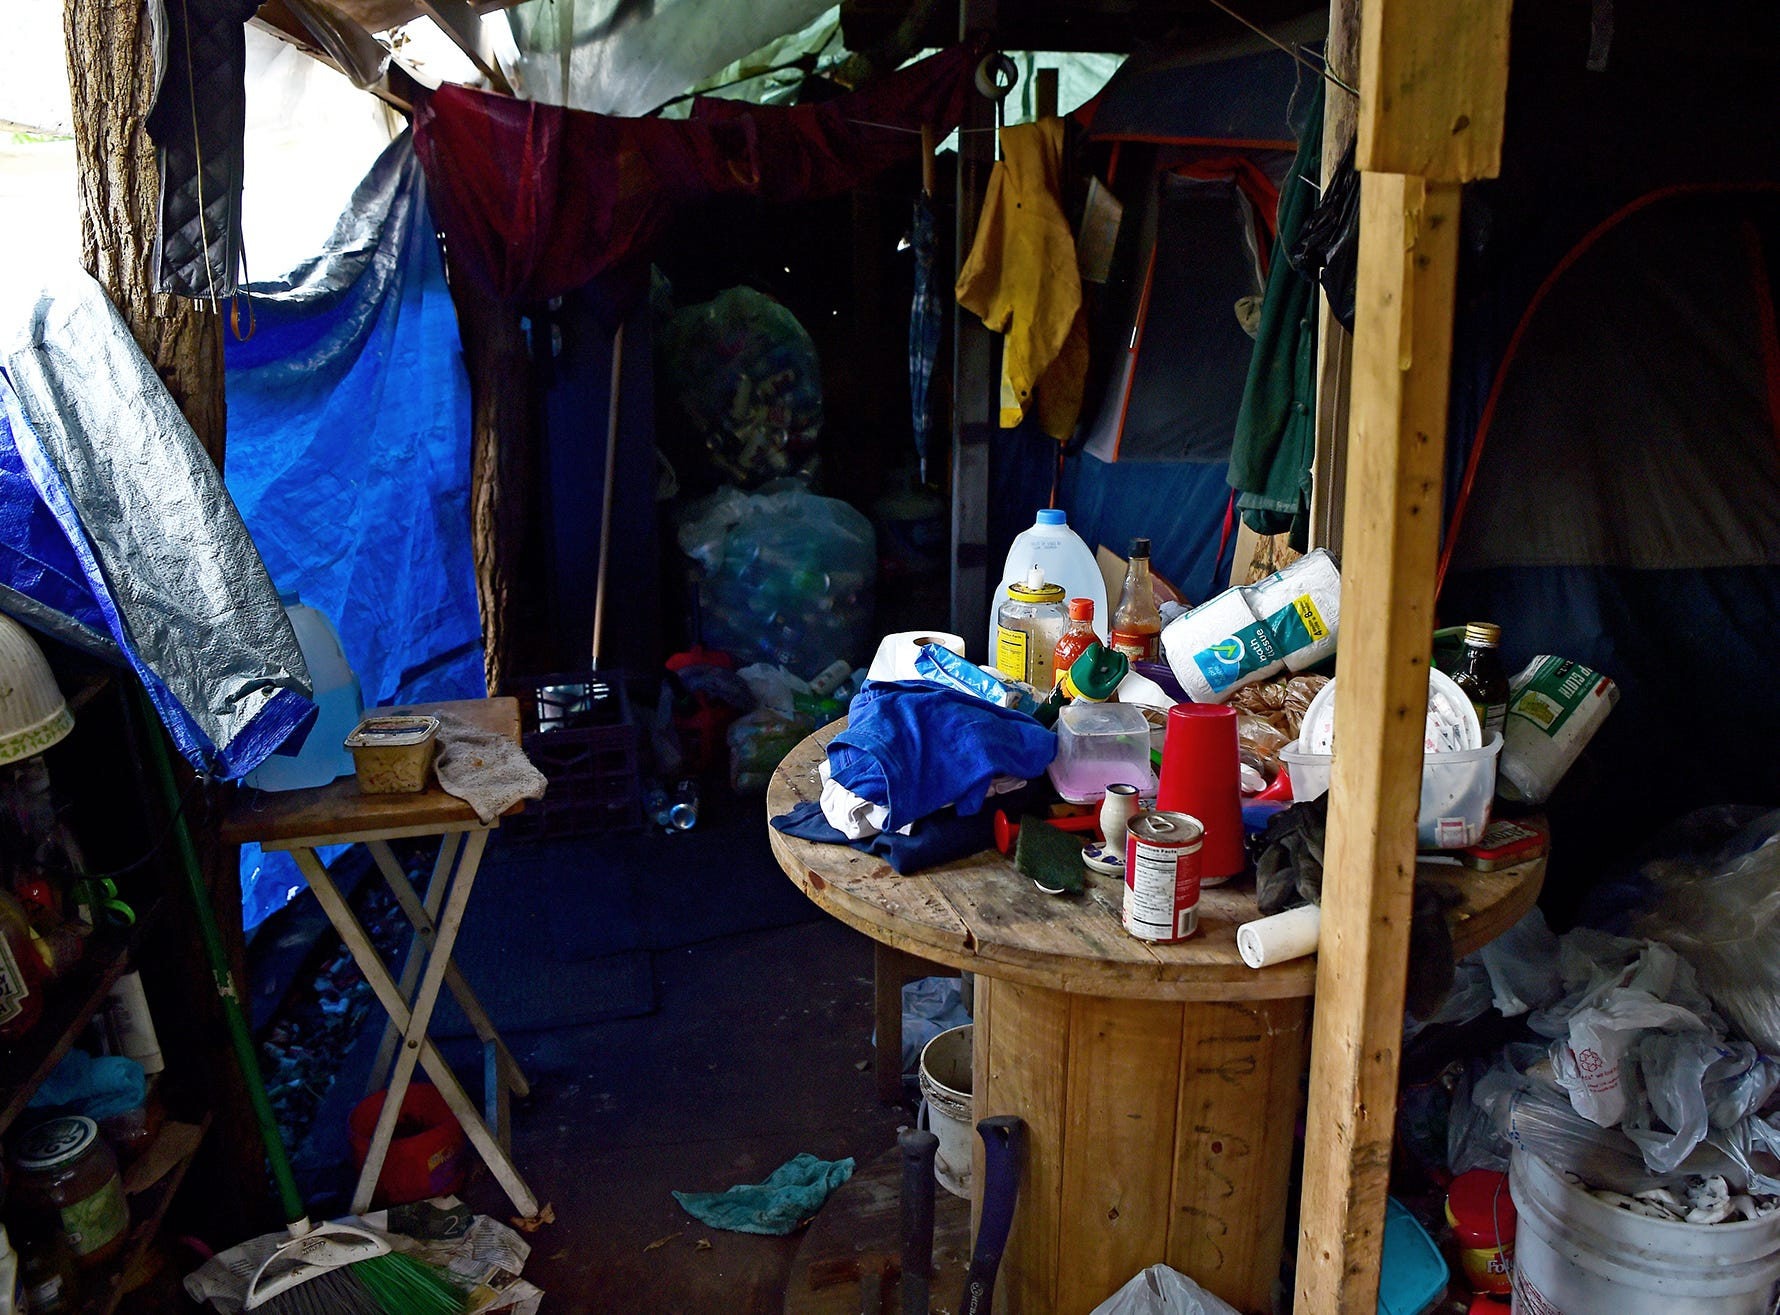 """Inside the structure which serves as home for a resident of """"The Jungle"""" in Ithaca, August 31, 2018. Carmen Guidi and other volunteers often provide supplies and help homeless people build shelters in The Jungle, which is located behind the shopping centers on Rt. 13."""